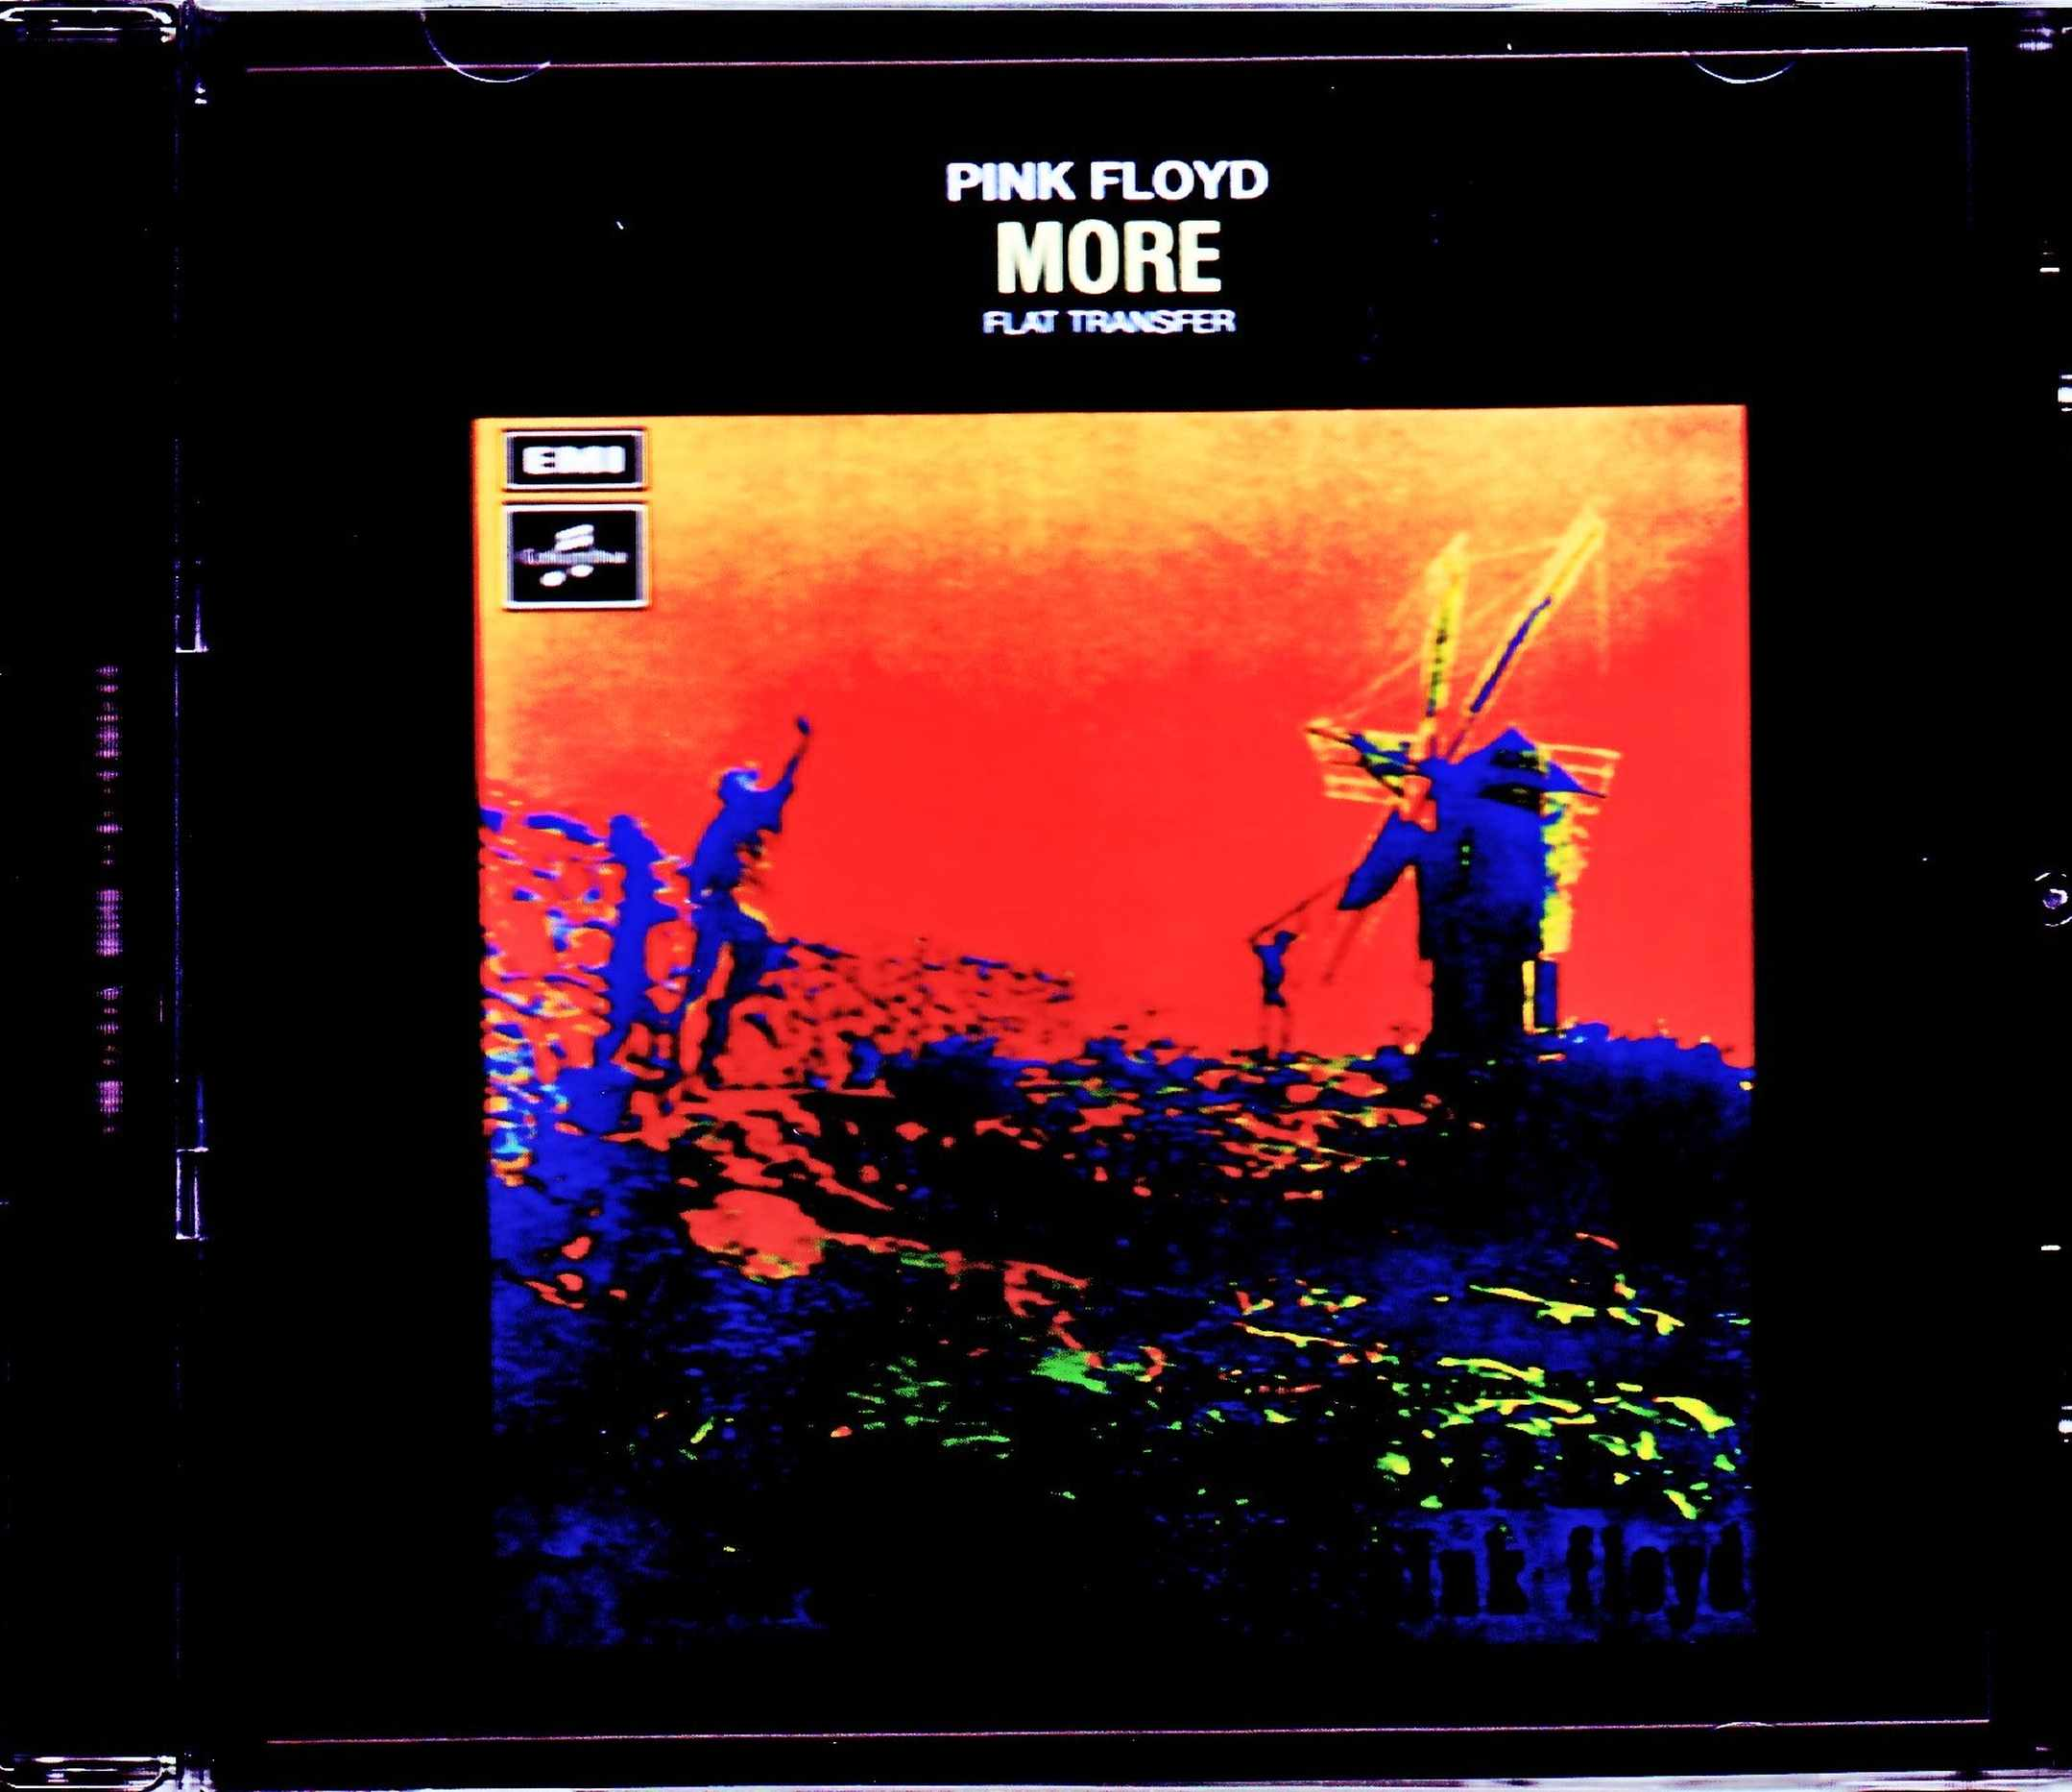 Pink Floyd ピンク・フロイド/モア More Flat Transfer & more